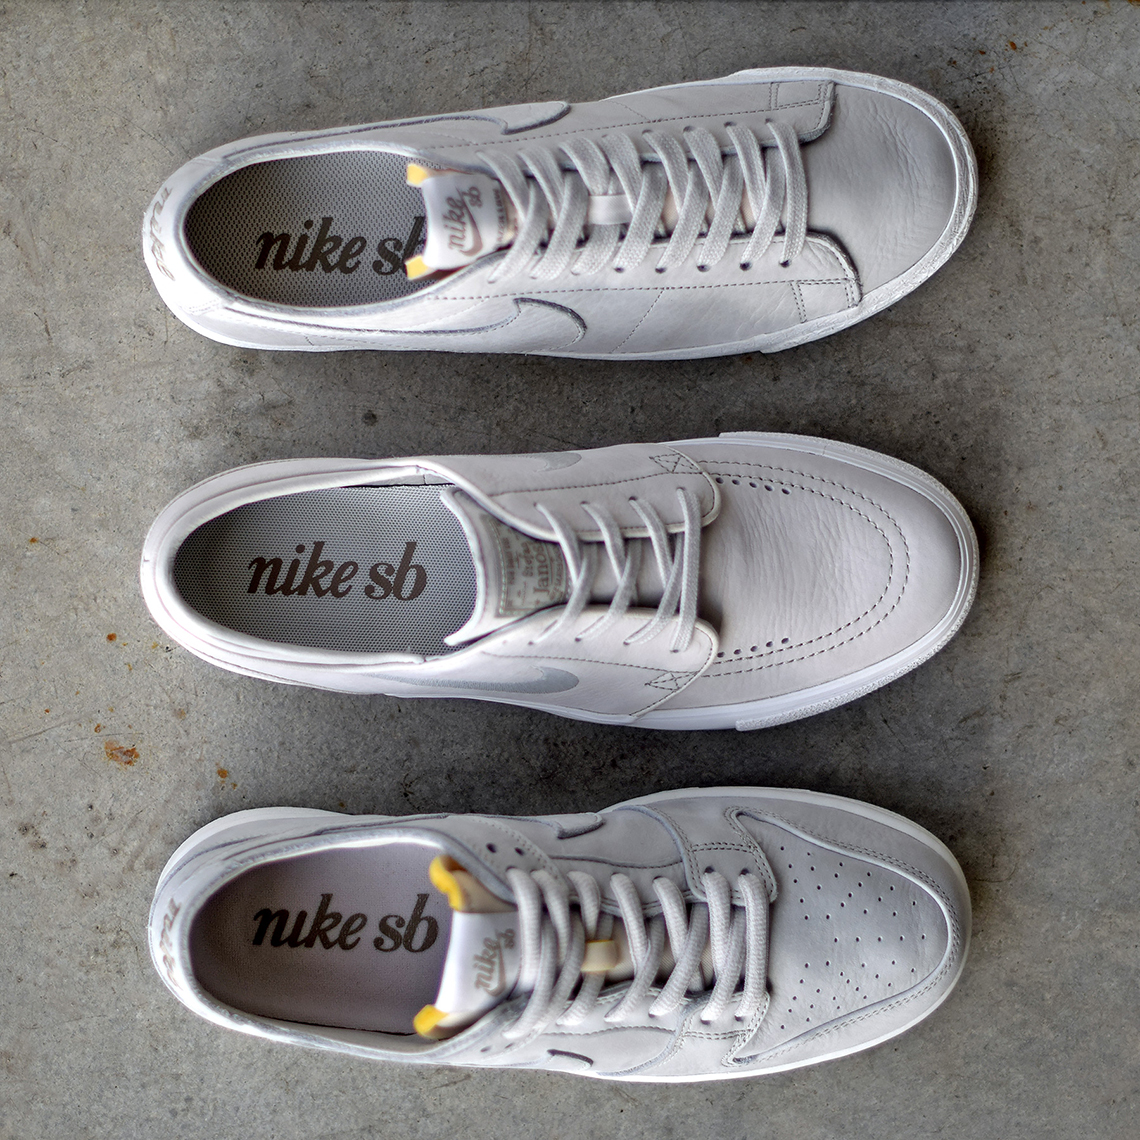 new york 66b81 242b5 Nike SB Is Releasing A Full Deconstructed Pack Of Skate ...